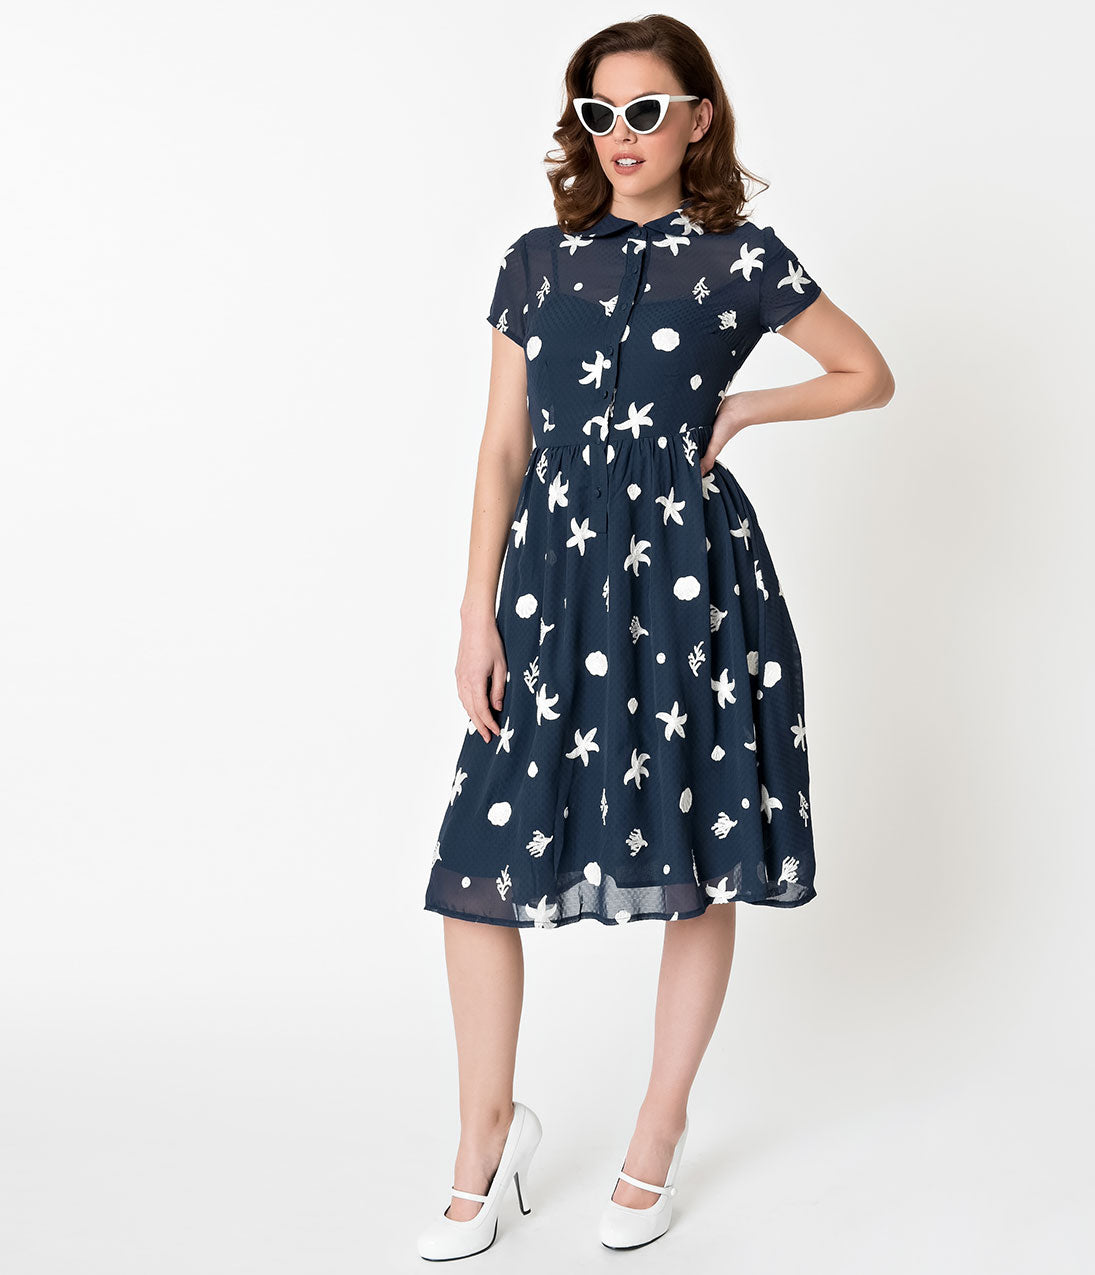 Vintage Tea Dresses, Floral Tea Dresses, Tea Length Dresses Voodoo Vixen Navy Blue Under The Sea Embroidered Mary Swing Dress $48.00 AT vintagedancer.com